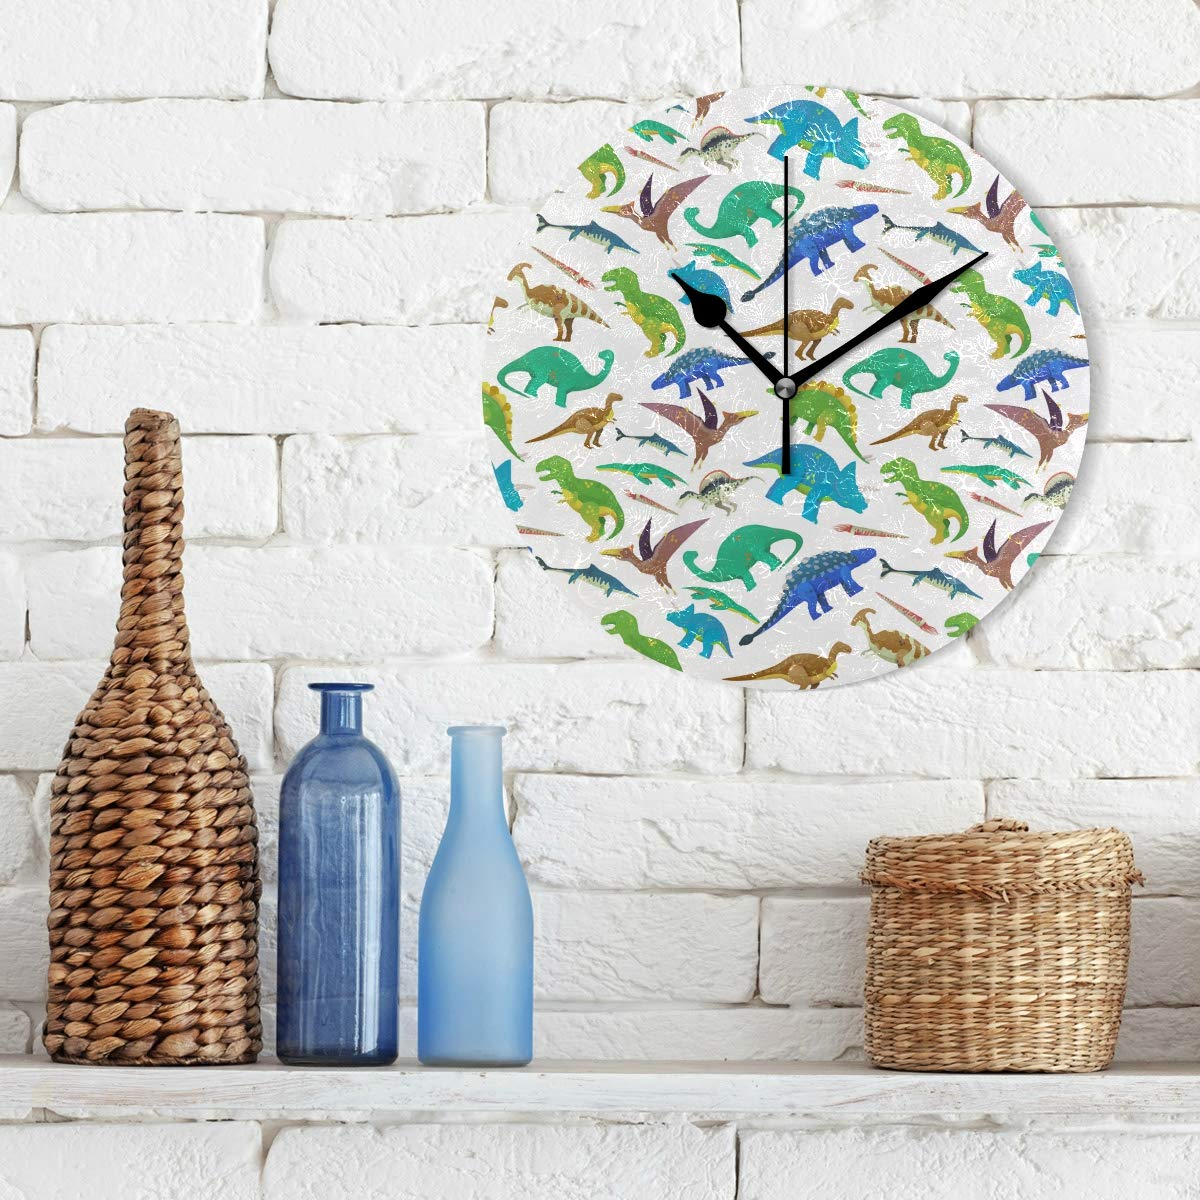 Amazon.com: Bush August Modern Creative Wall Clock Round Easy to Read & Hang Home/Office/School Clock,Decorative for Kitchen, Living Room, Bedroom White ...